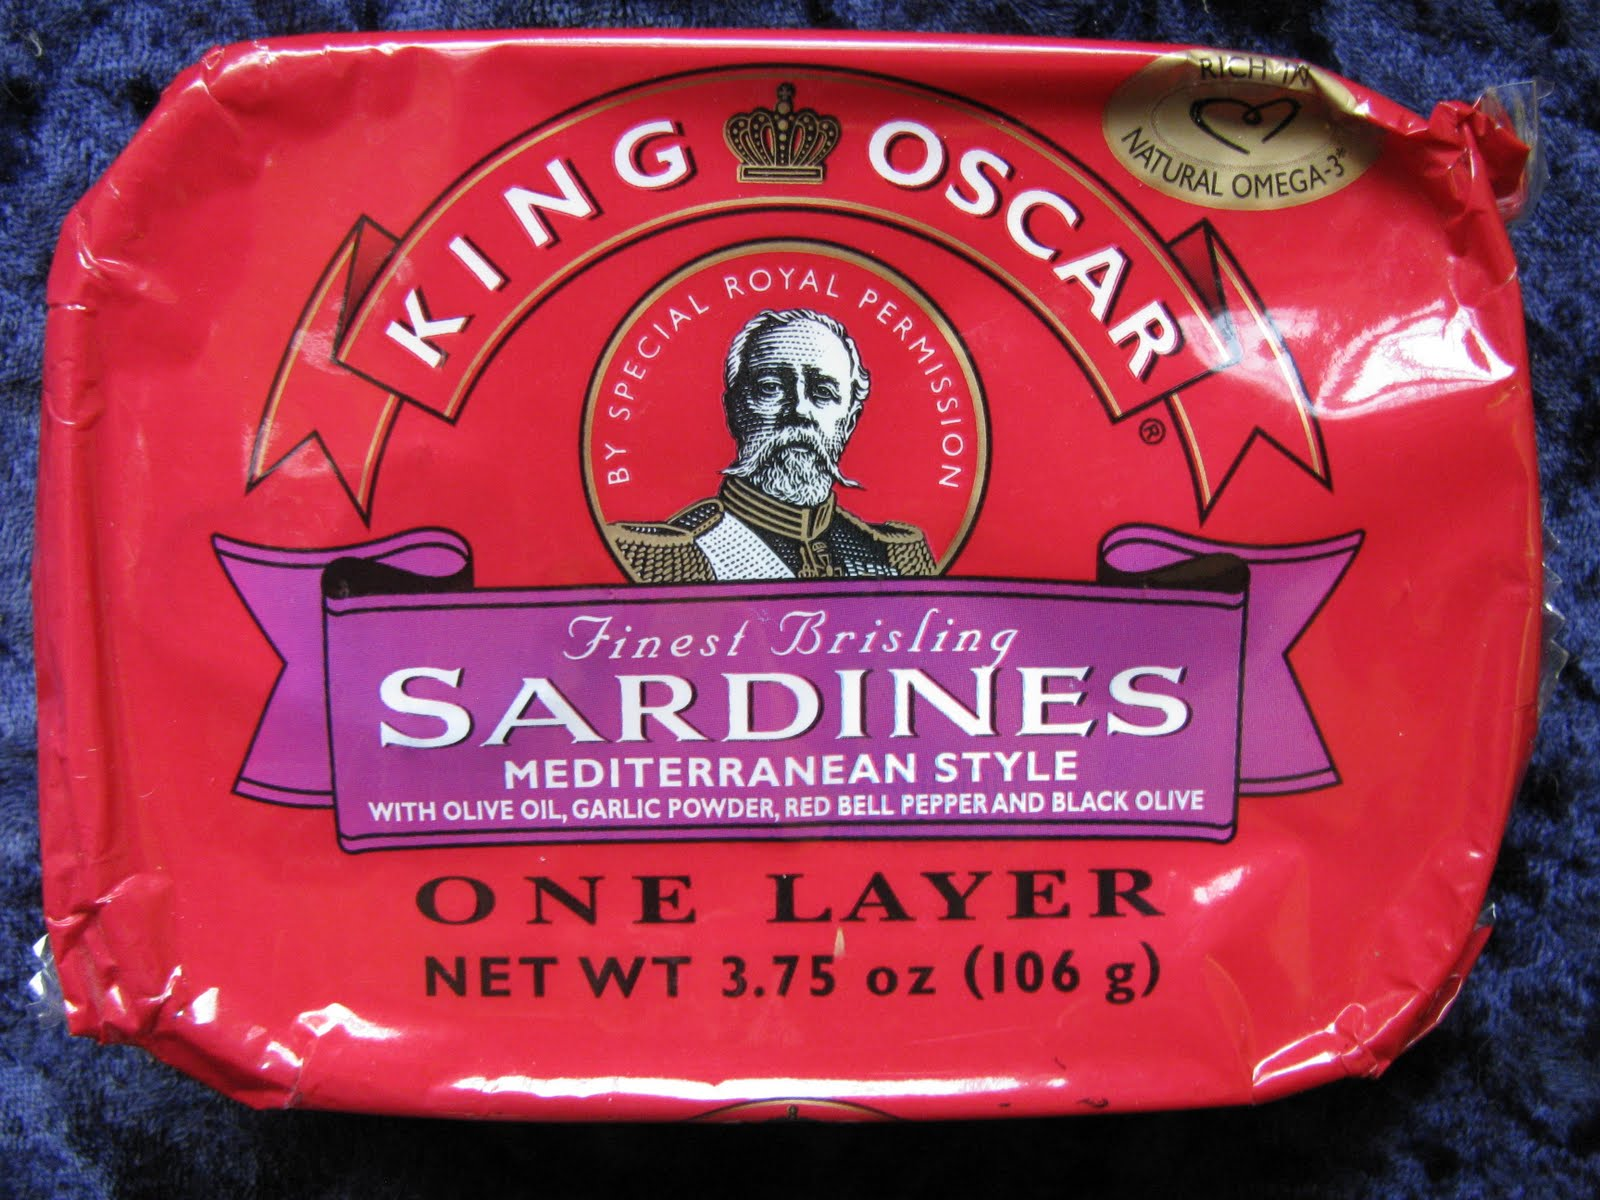 Mouth Full Of Sardines: KING OSCAR- 22